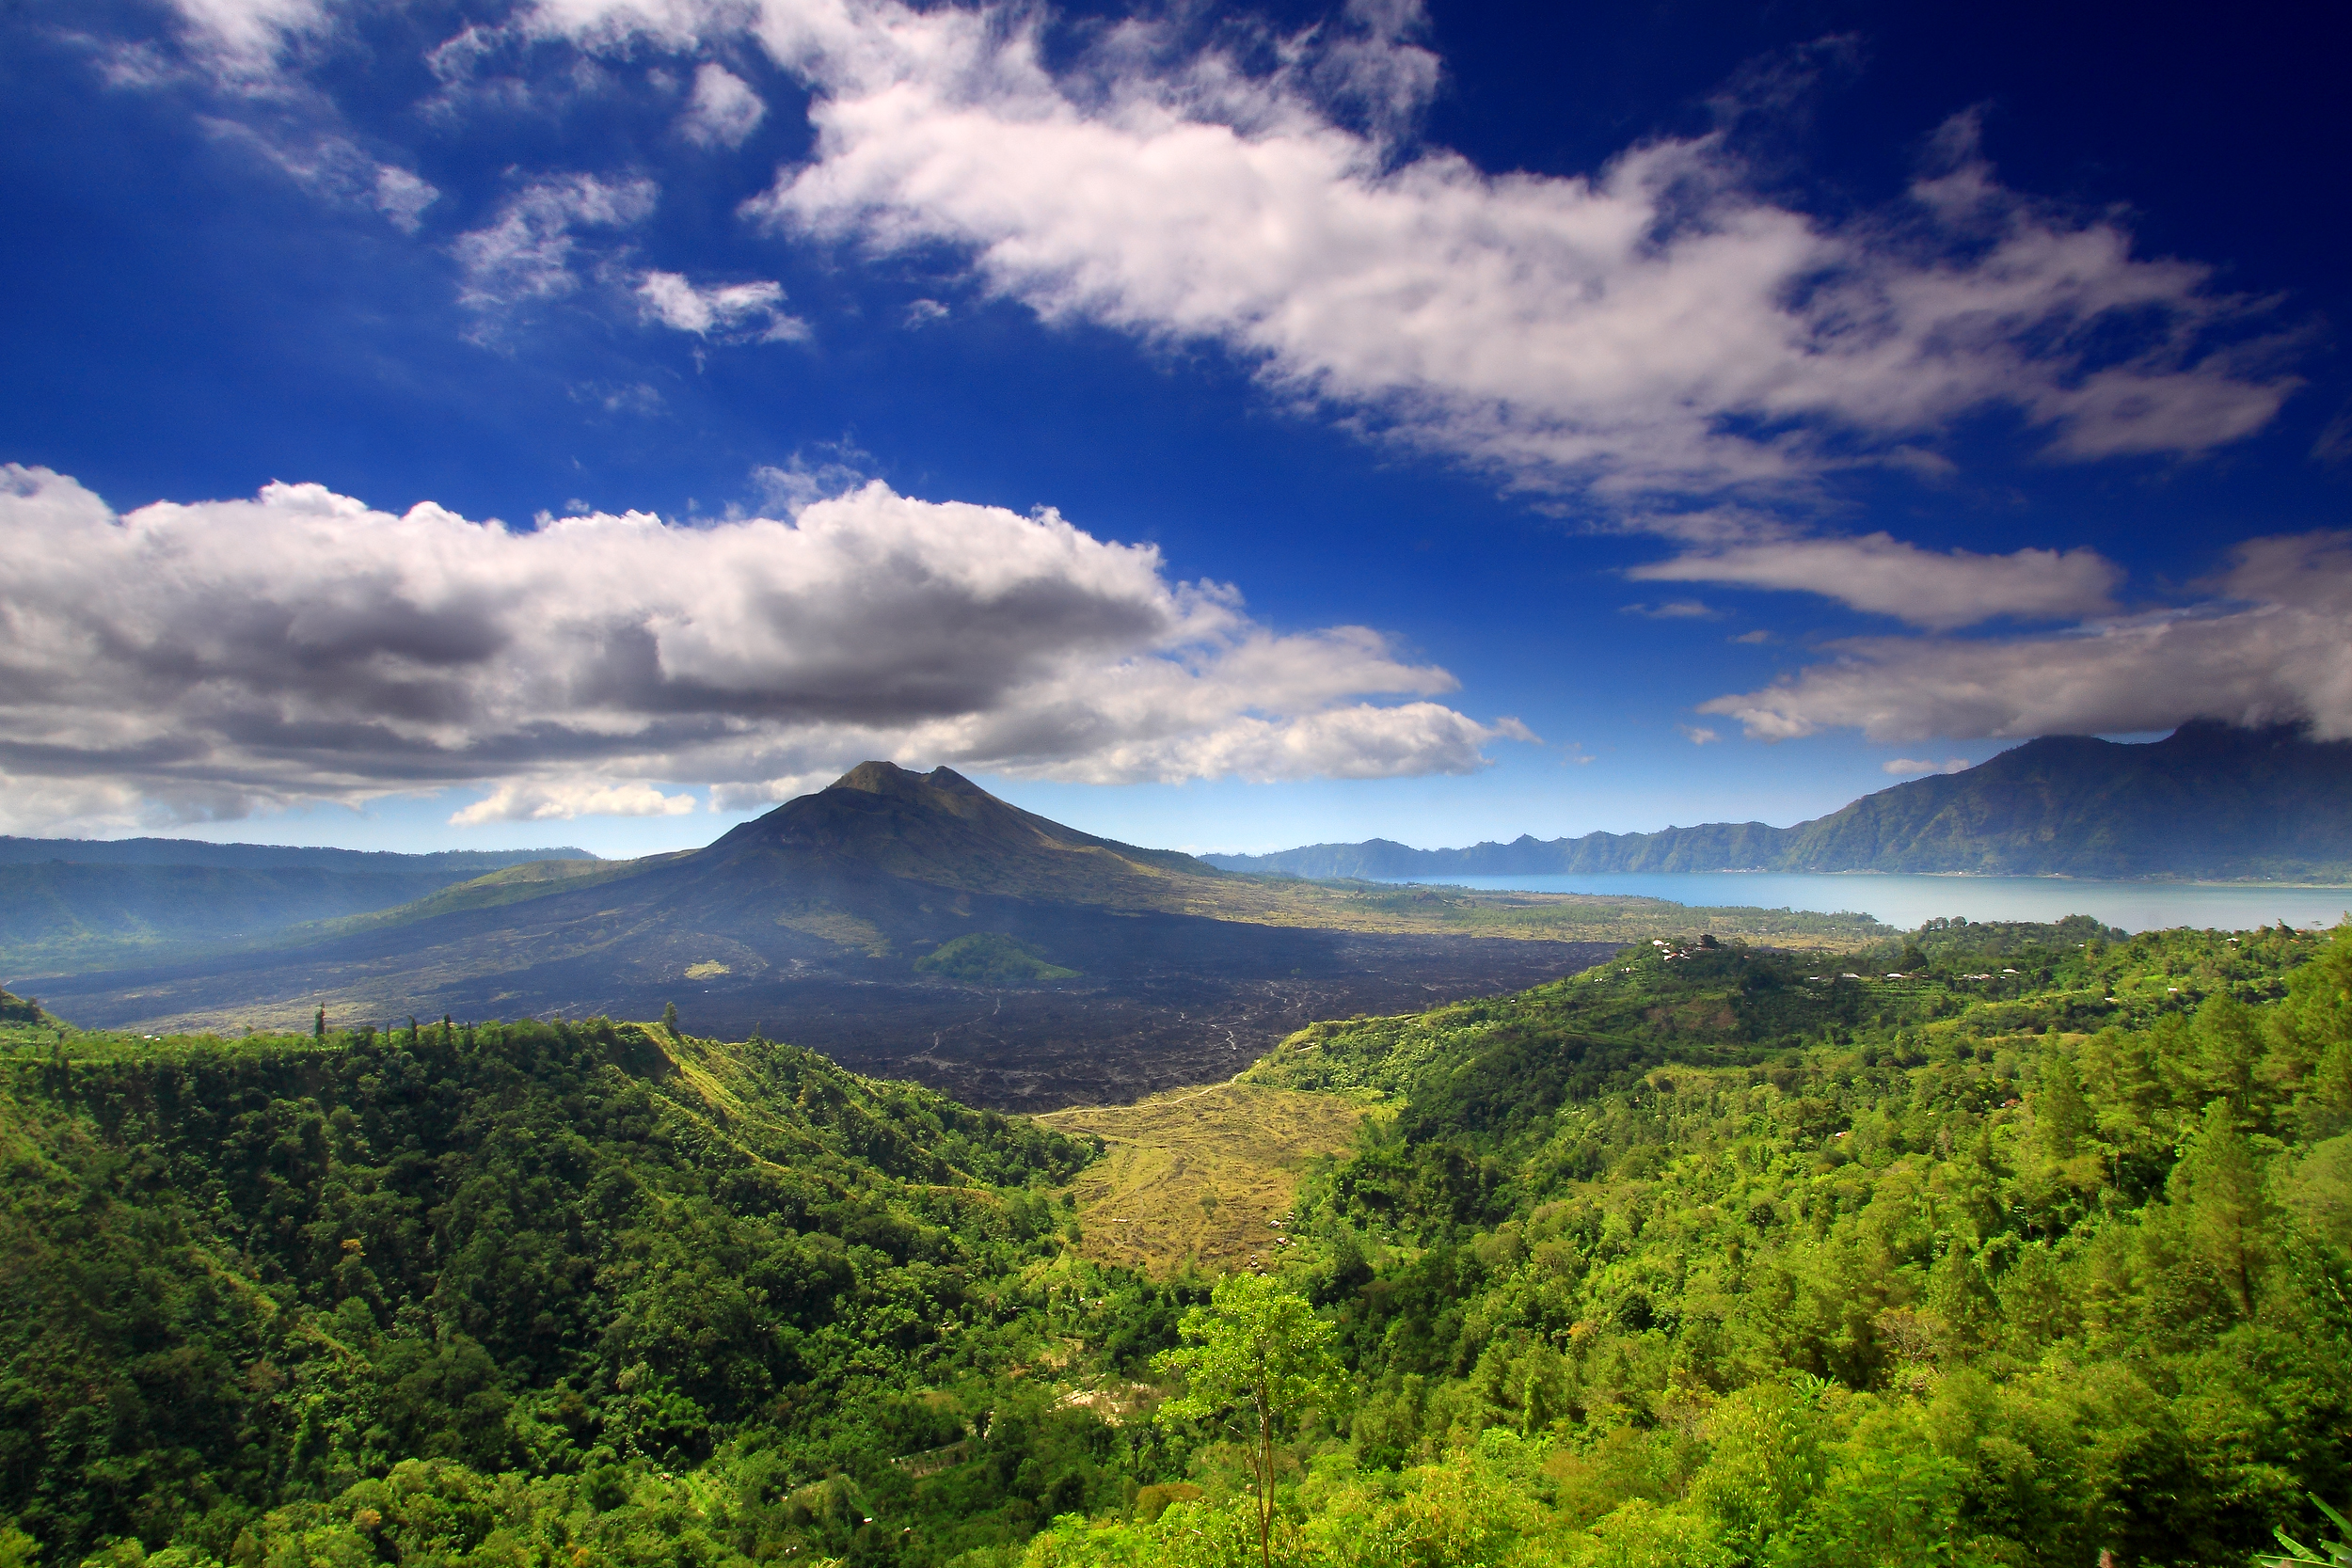 The rolling hills of Mount Batur, a volcano on the island of Bali.